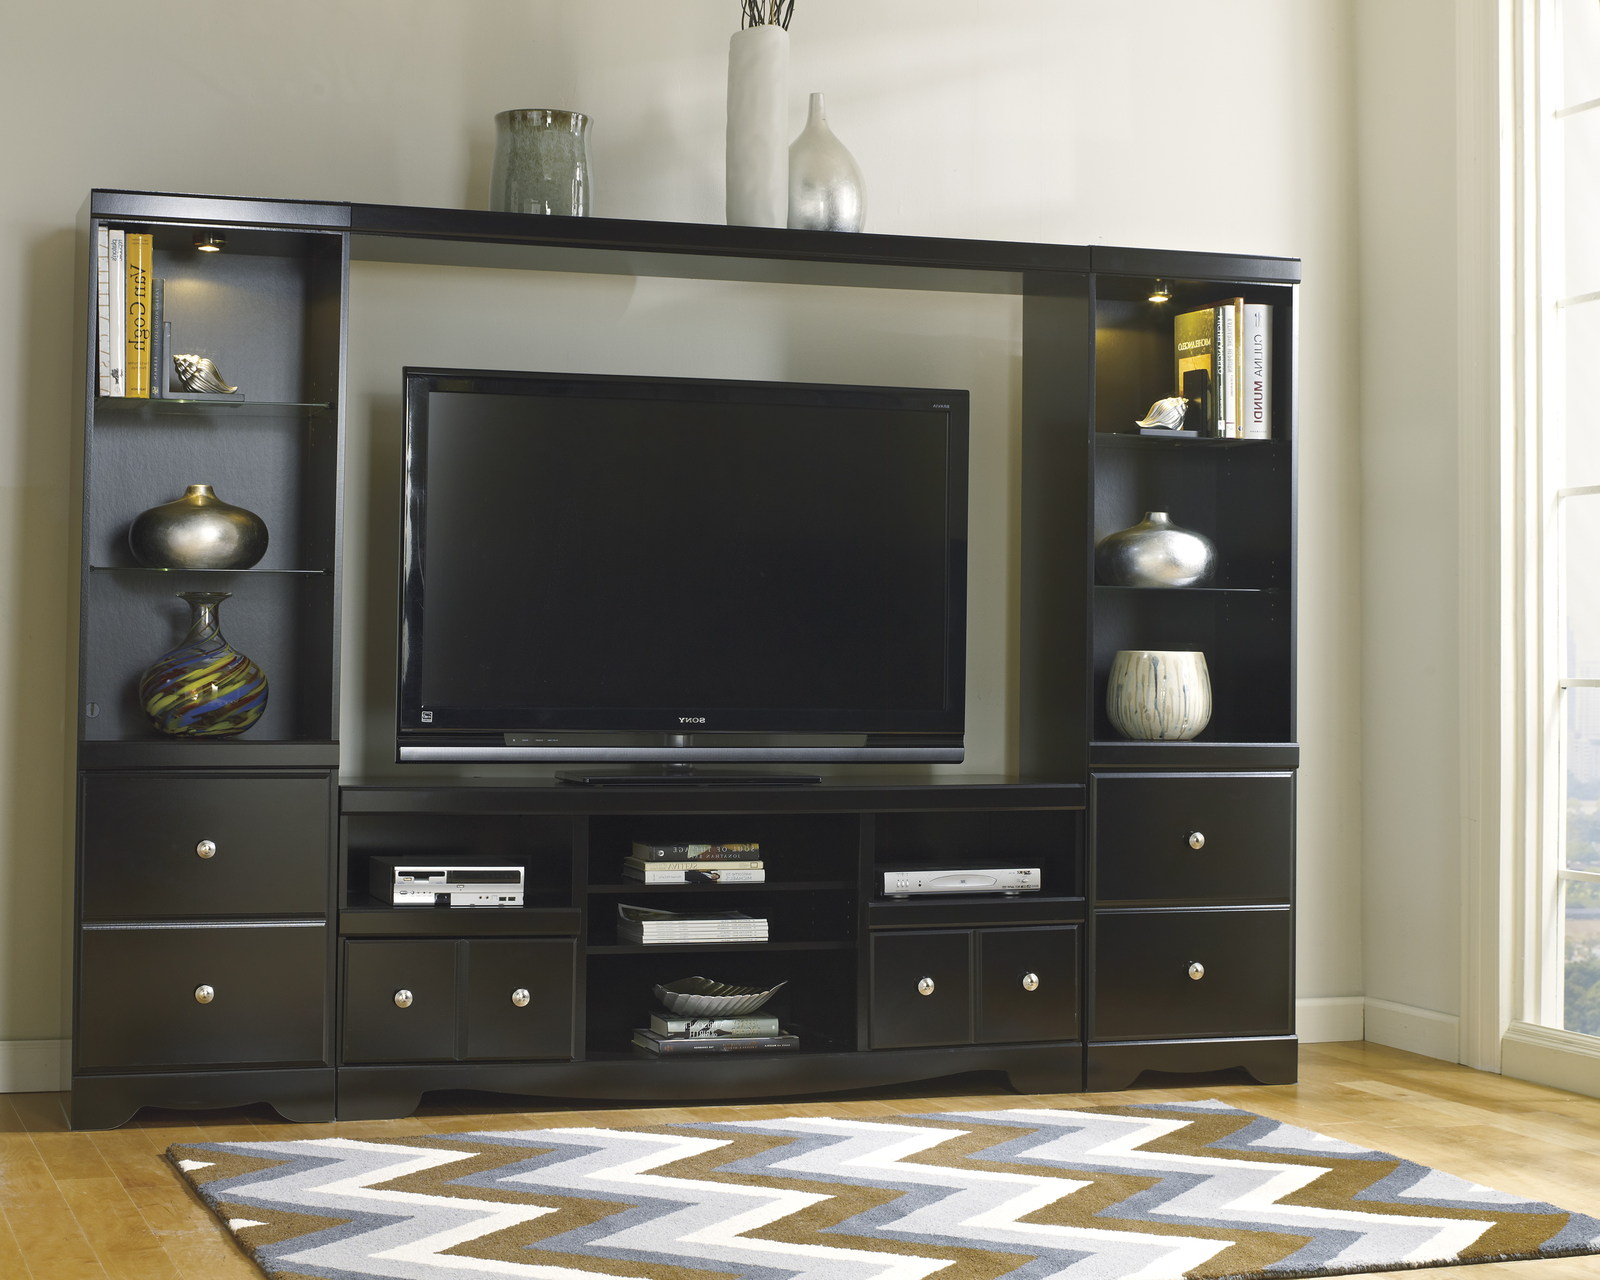 Shay Large Entertainment Unit With TV Stand W Fireplace Option Bridge Amp Two Side Piers In Black